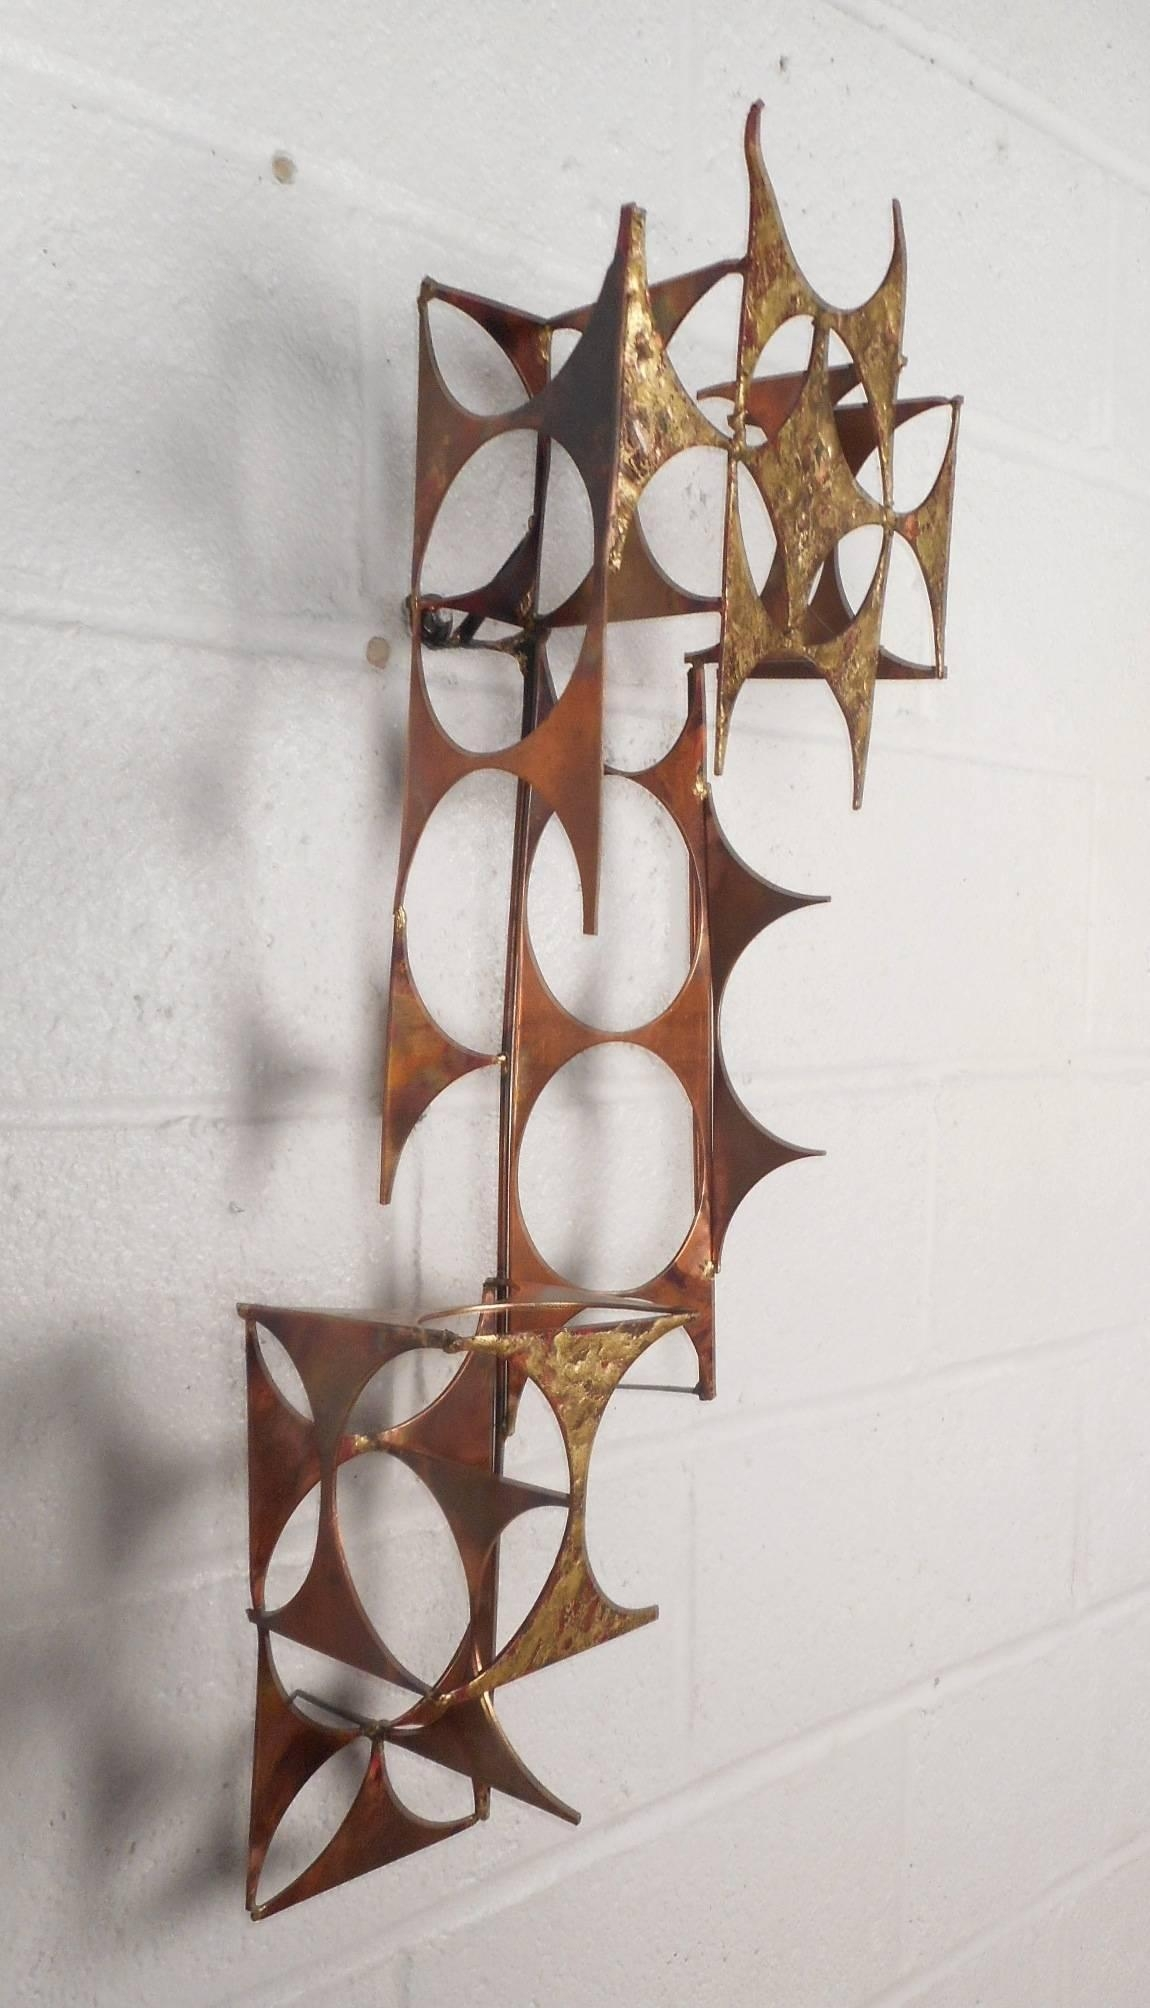 Mid Century Modern C Jere Style Copper And Brass Wall Art For With Regard To C Jere Wall Art (View 4 of 20)